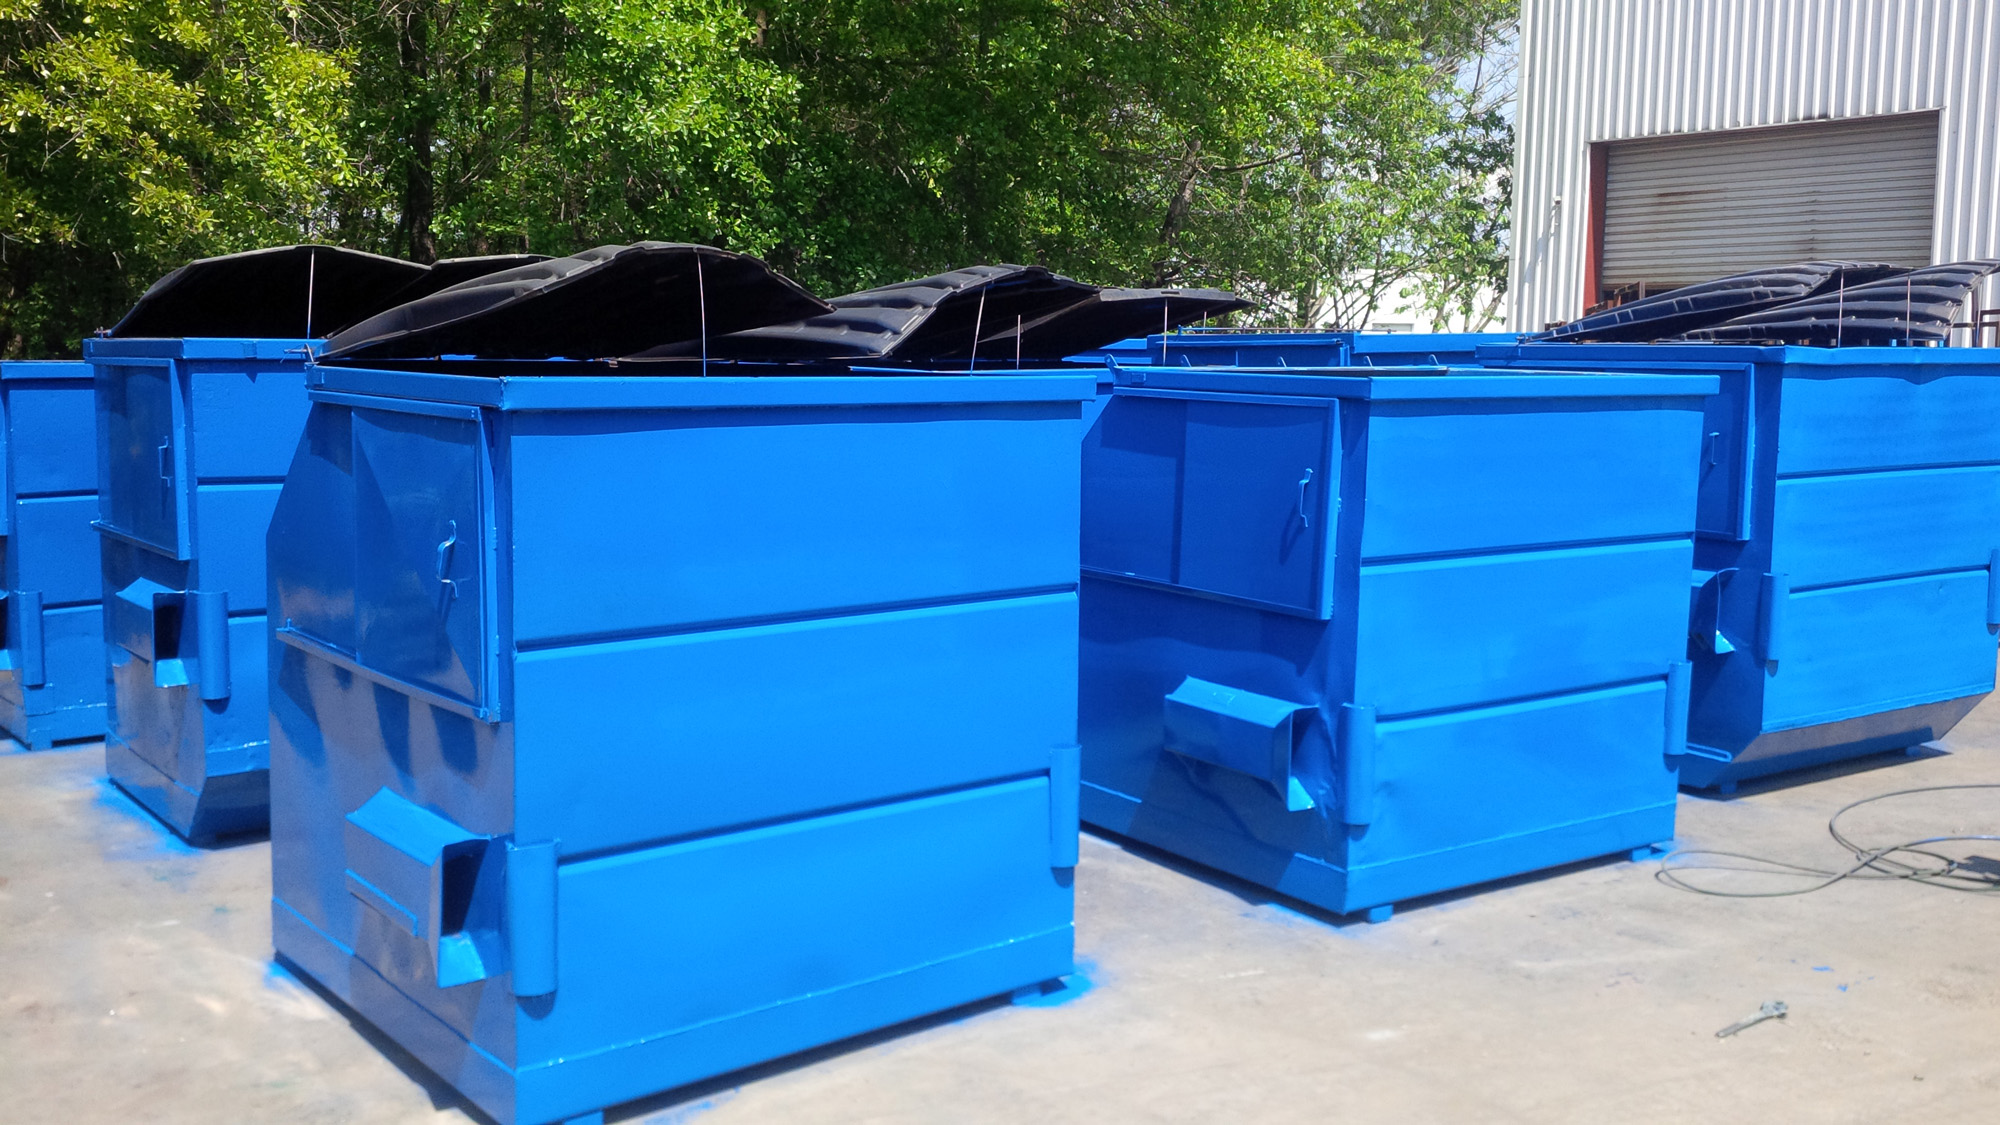 A Set Of Dumpster That Been Repaired